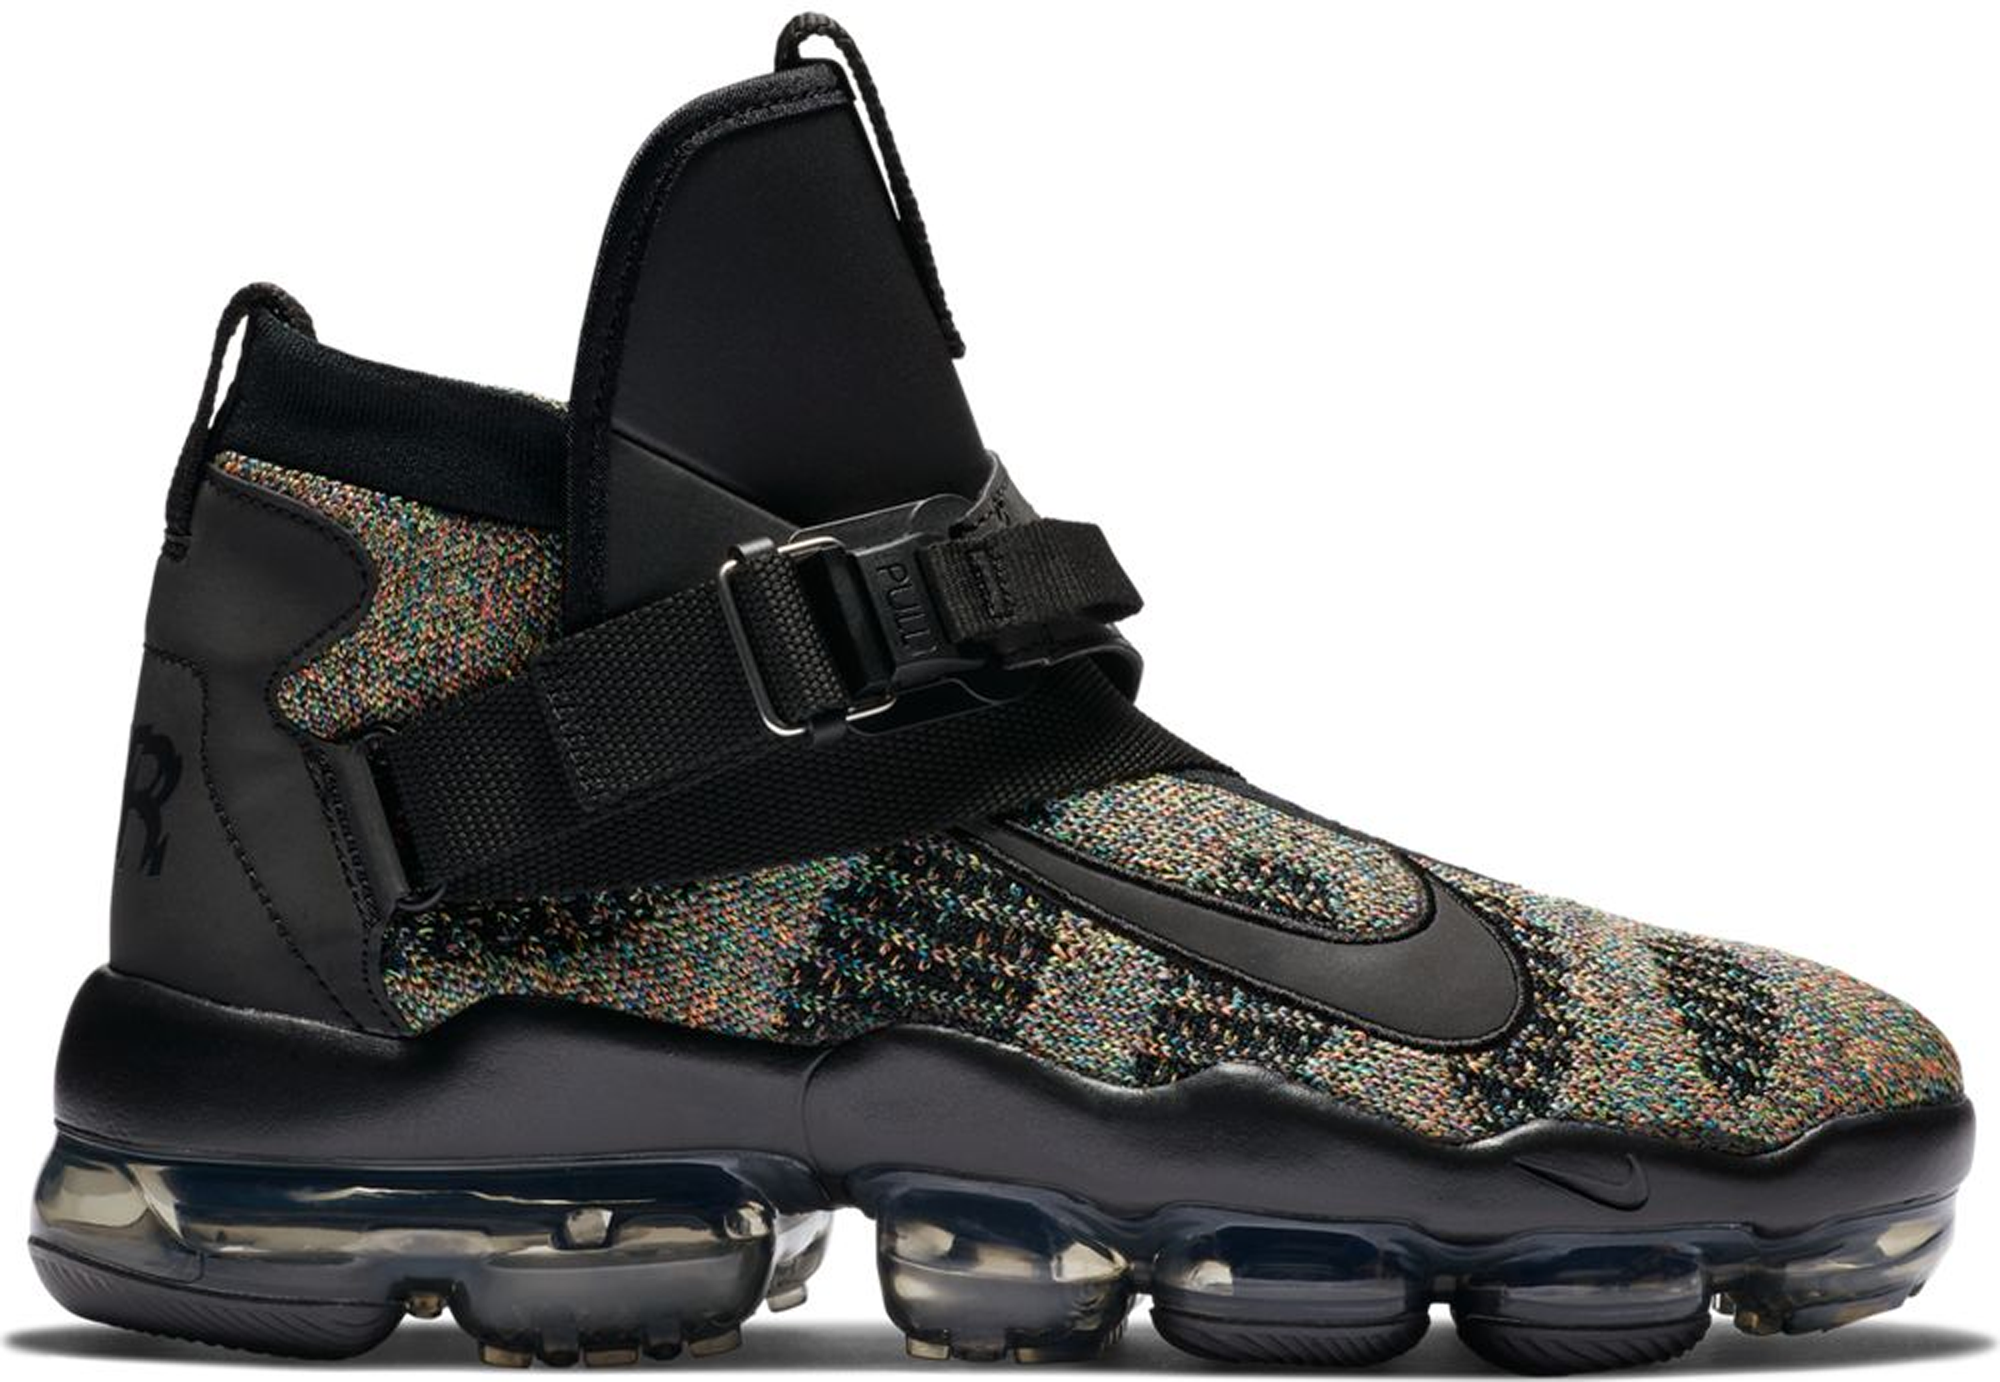 Nike VaporMax Premier Flyknit Black Multi-Color